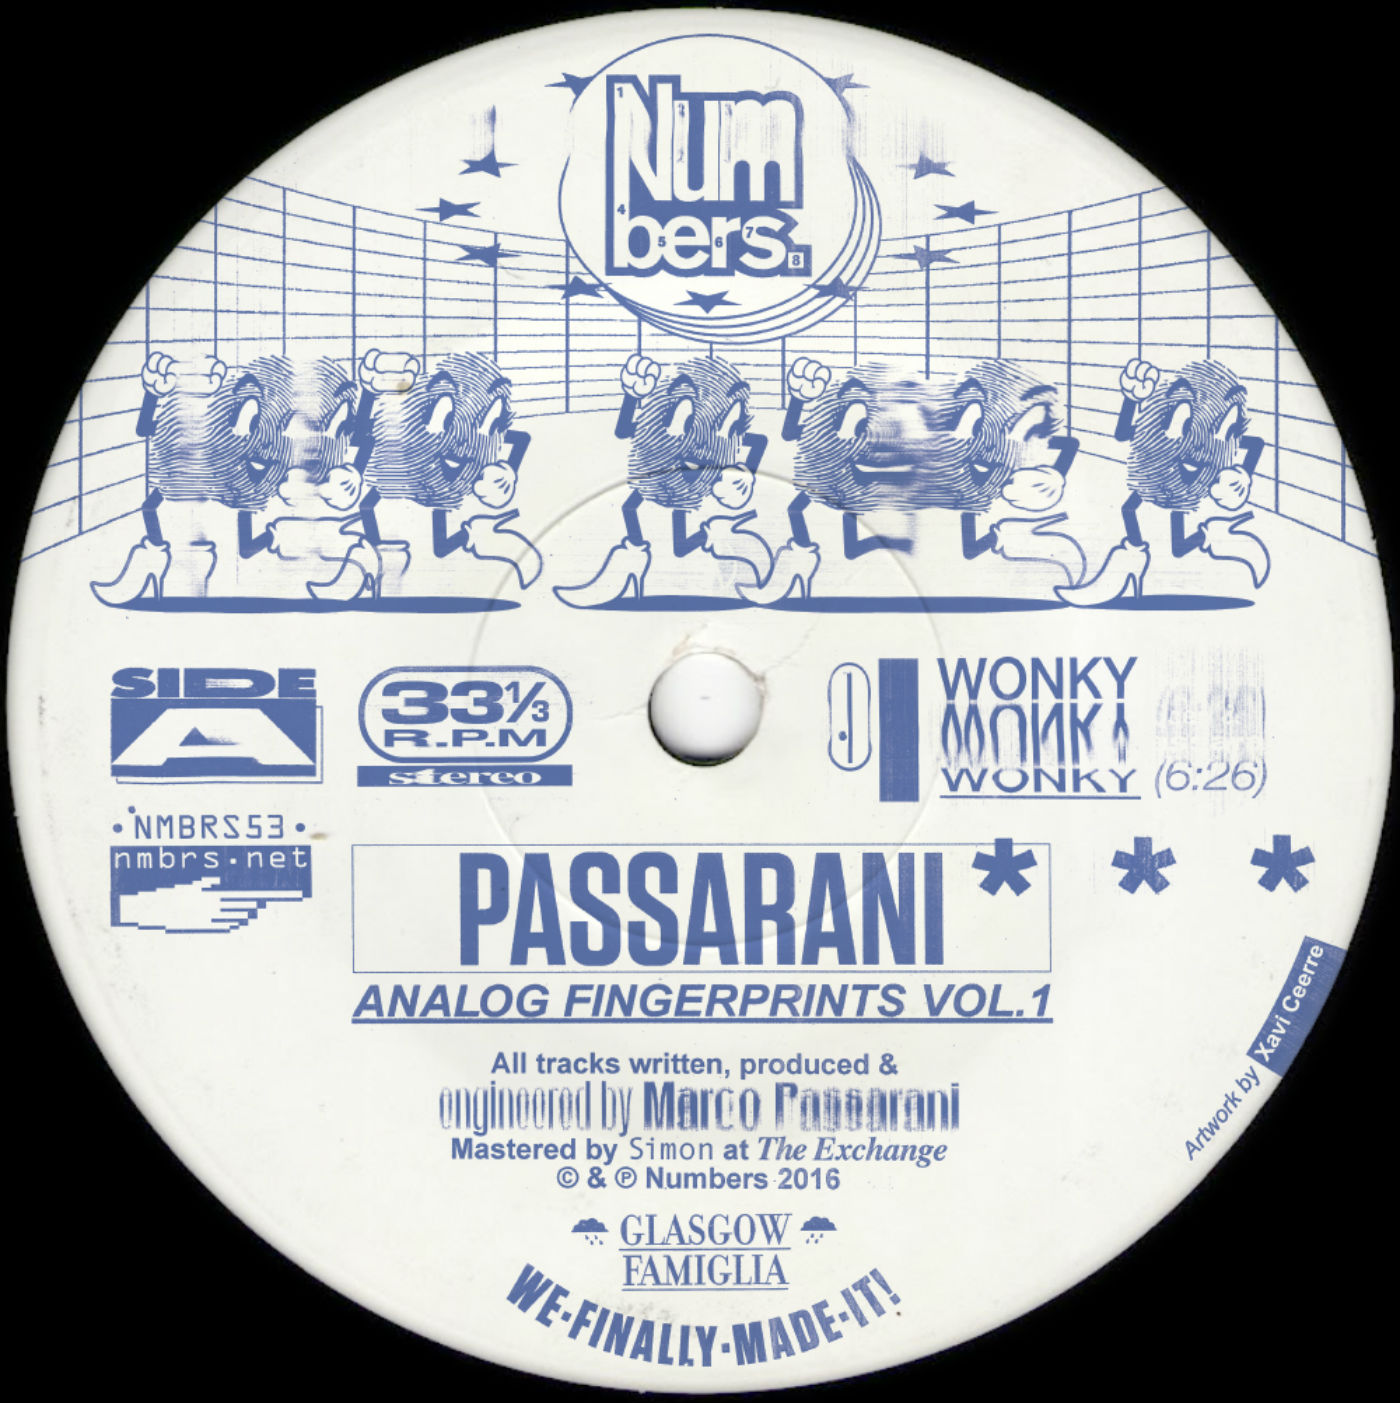 Passarani/ANALOG FINGERPRINTS VOL. 1 12""